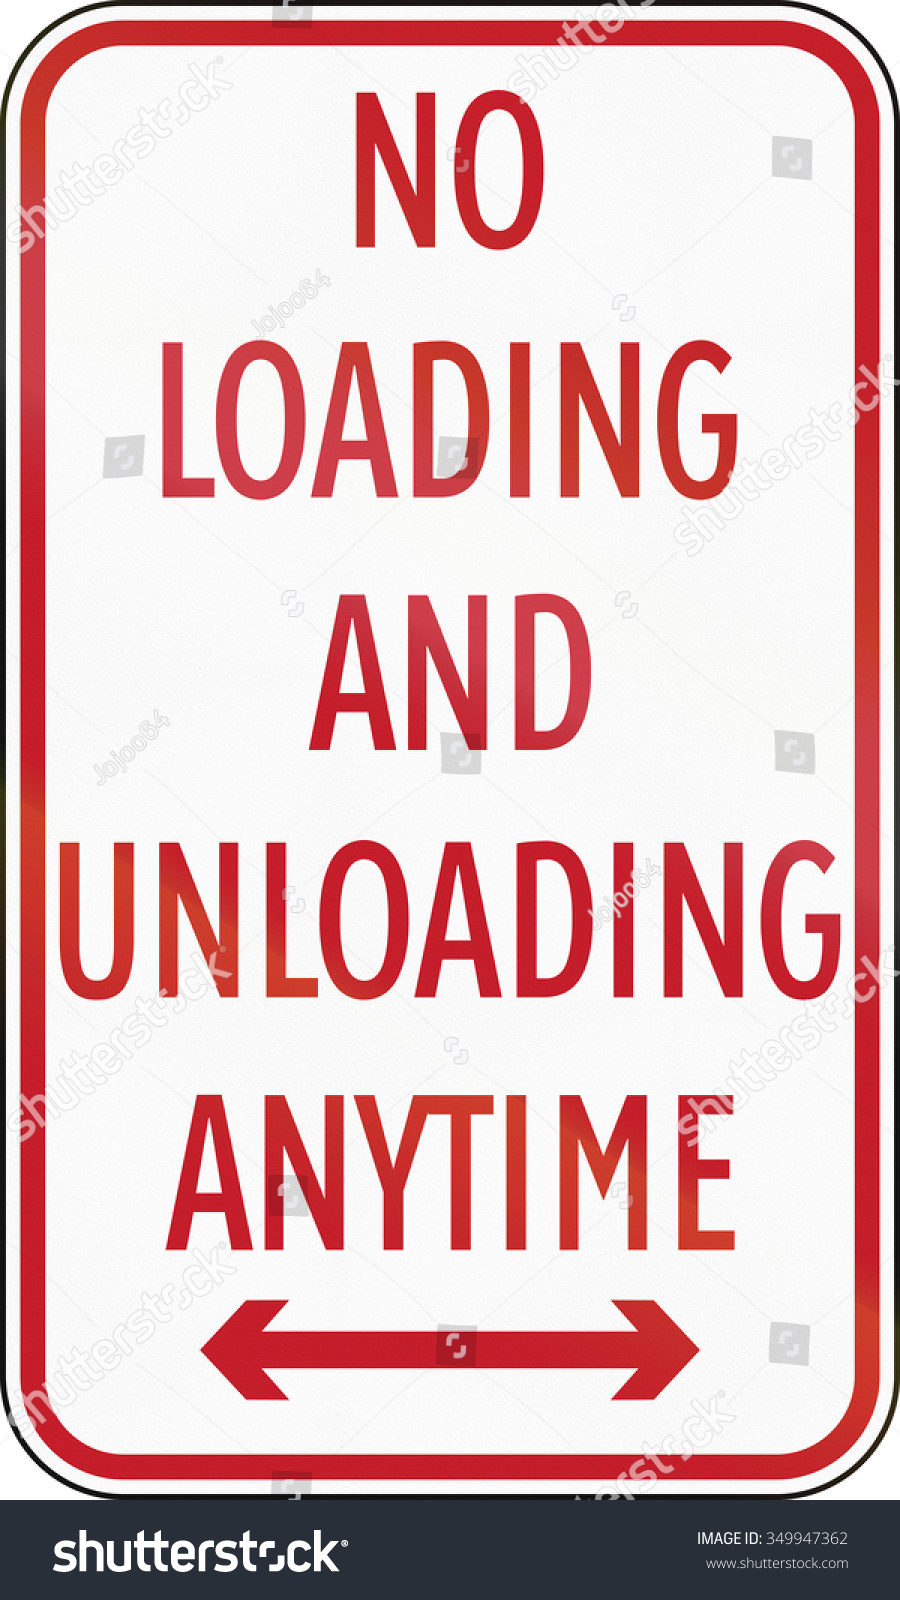 Road sign philippines no loading unloading stock illustration road sign in the philippines no loading and unloading anytime buycottarizona Image collections